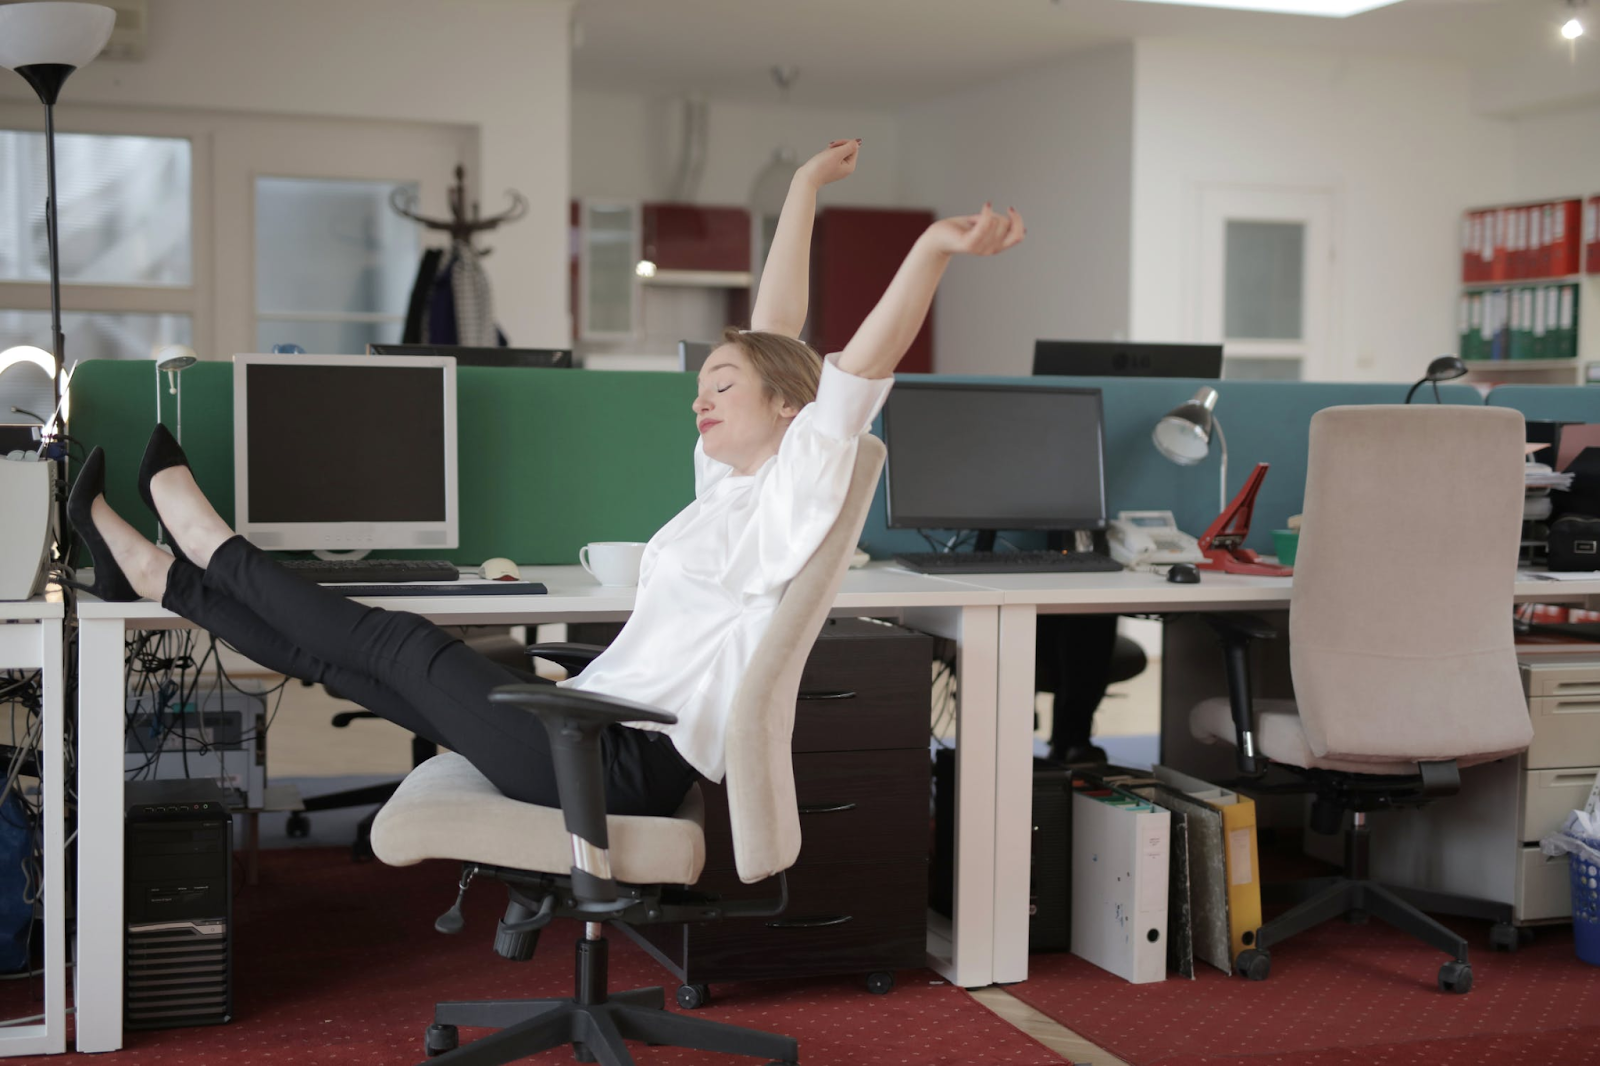 An image of a woman leaning back and stretching in her office chair, her arms in the air and her legs propped up on the desk.